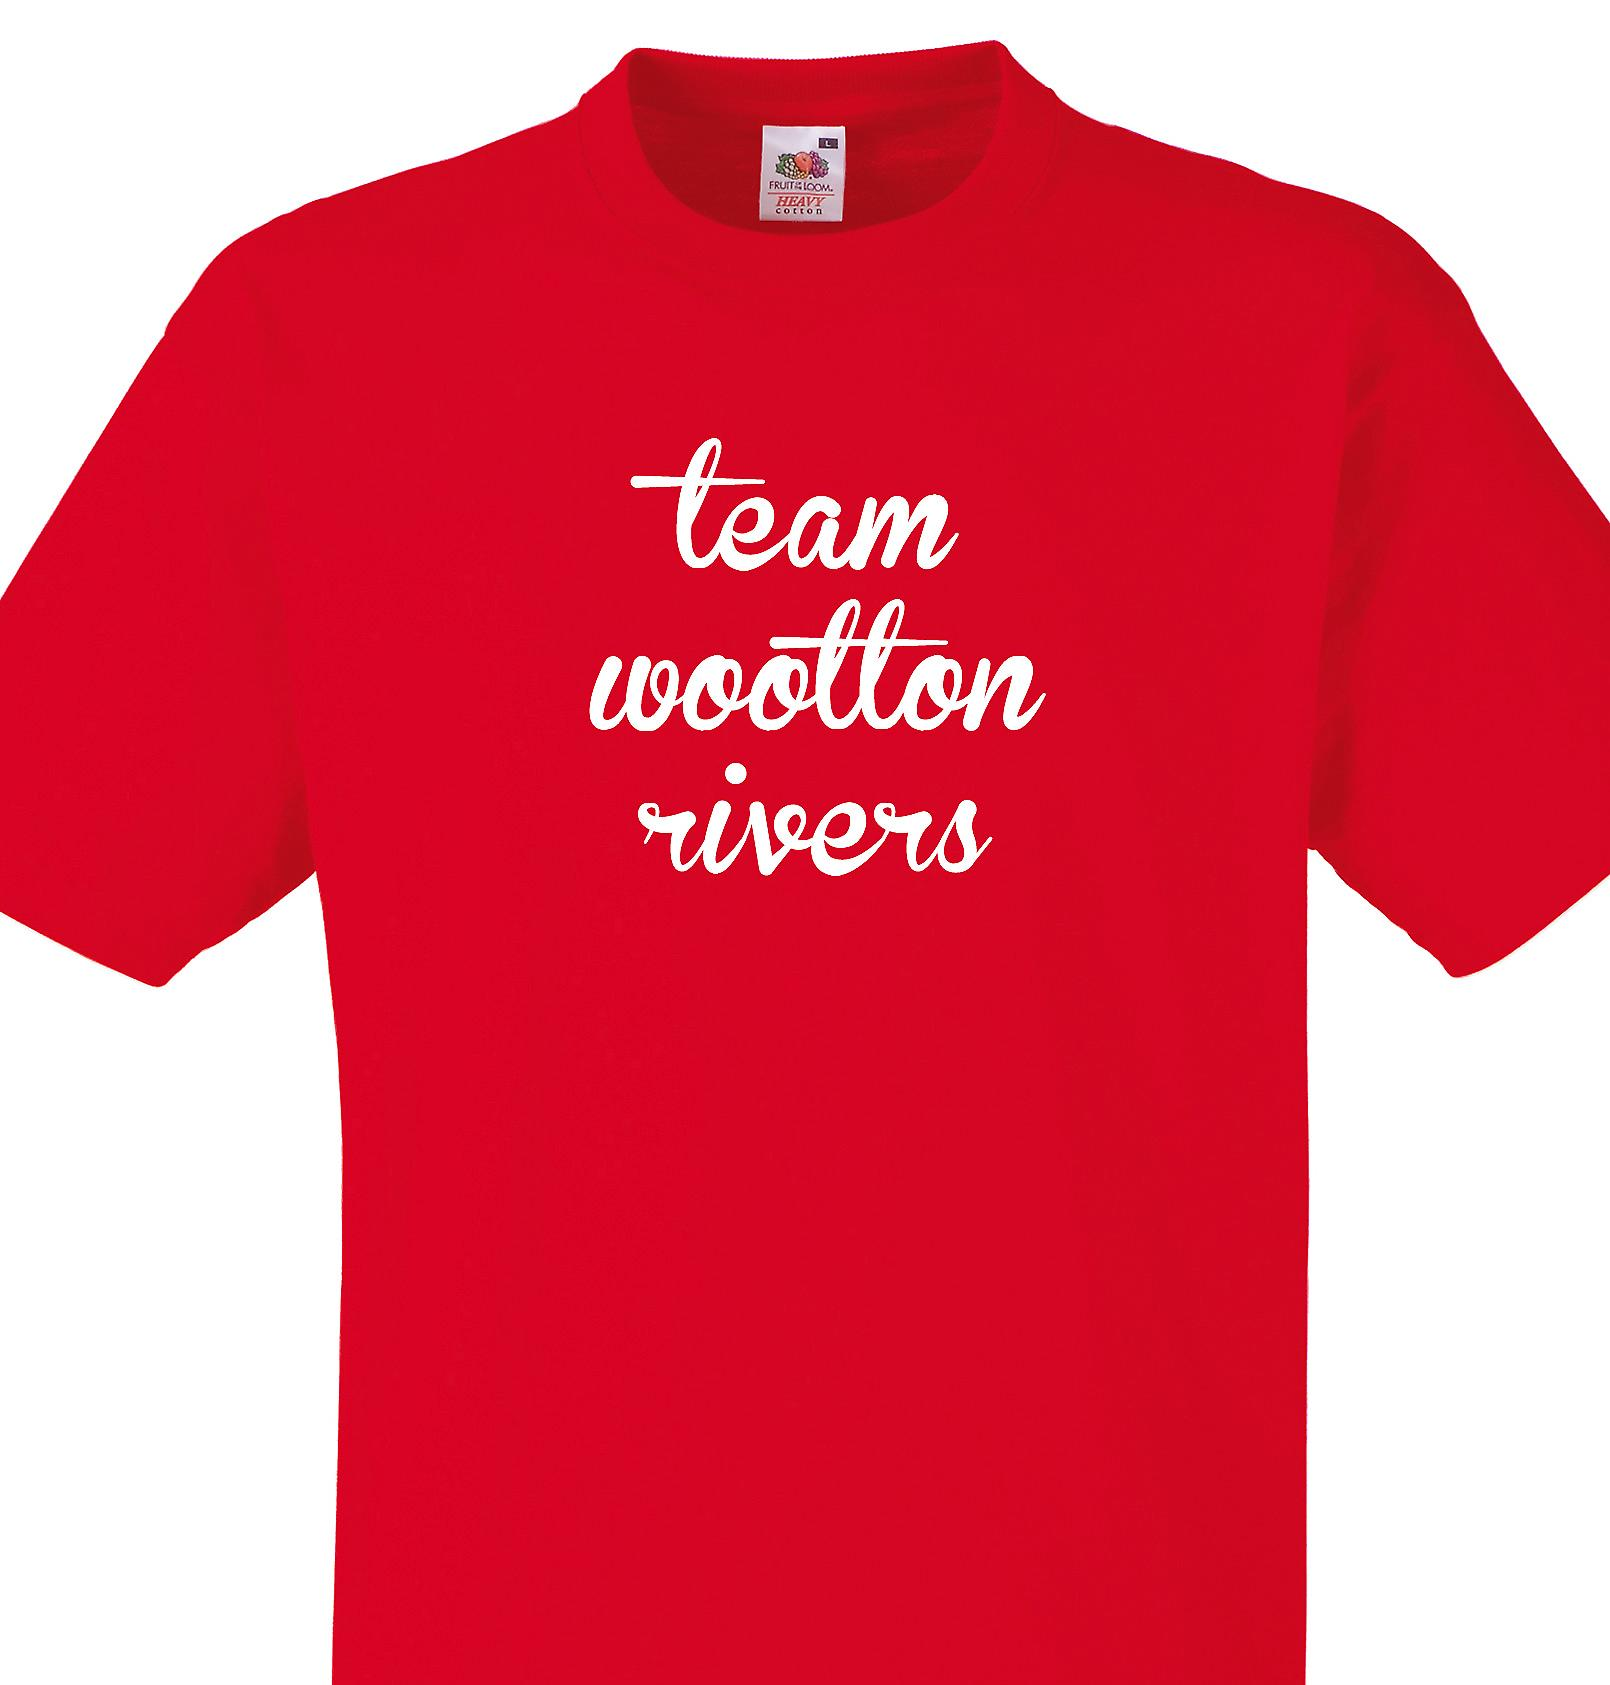 Team Wootton rivers Red T shirt